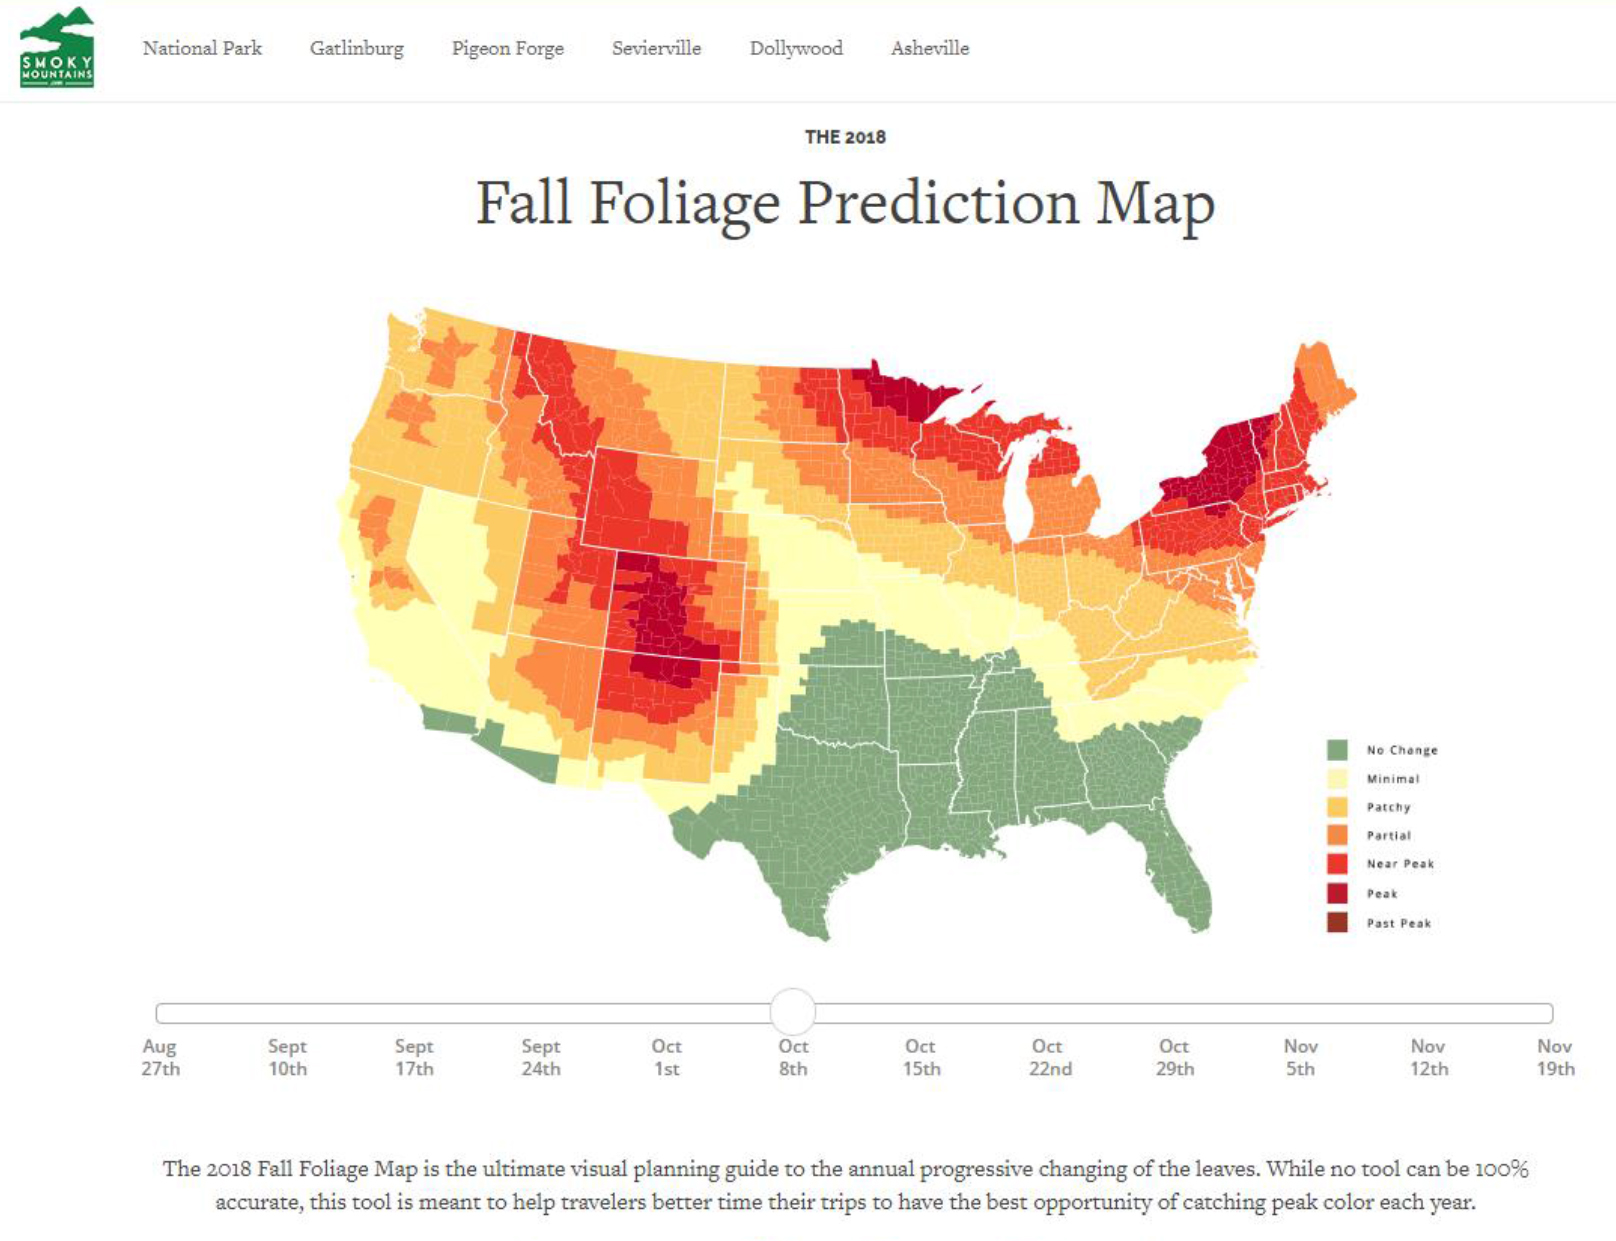 Don T Miss The Peak Time For Fall Colors Check Out The Smokey